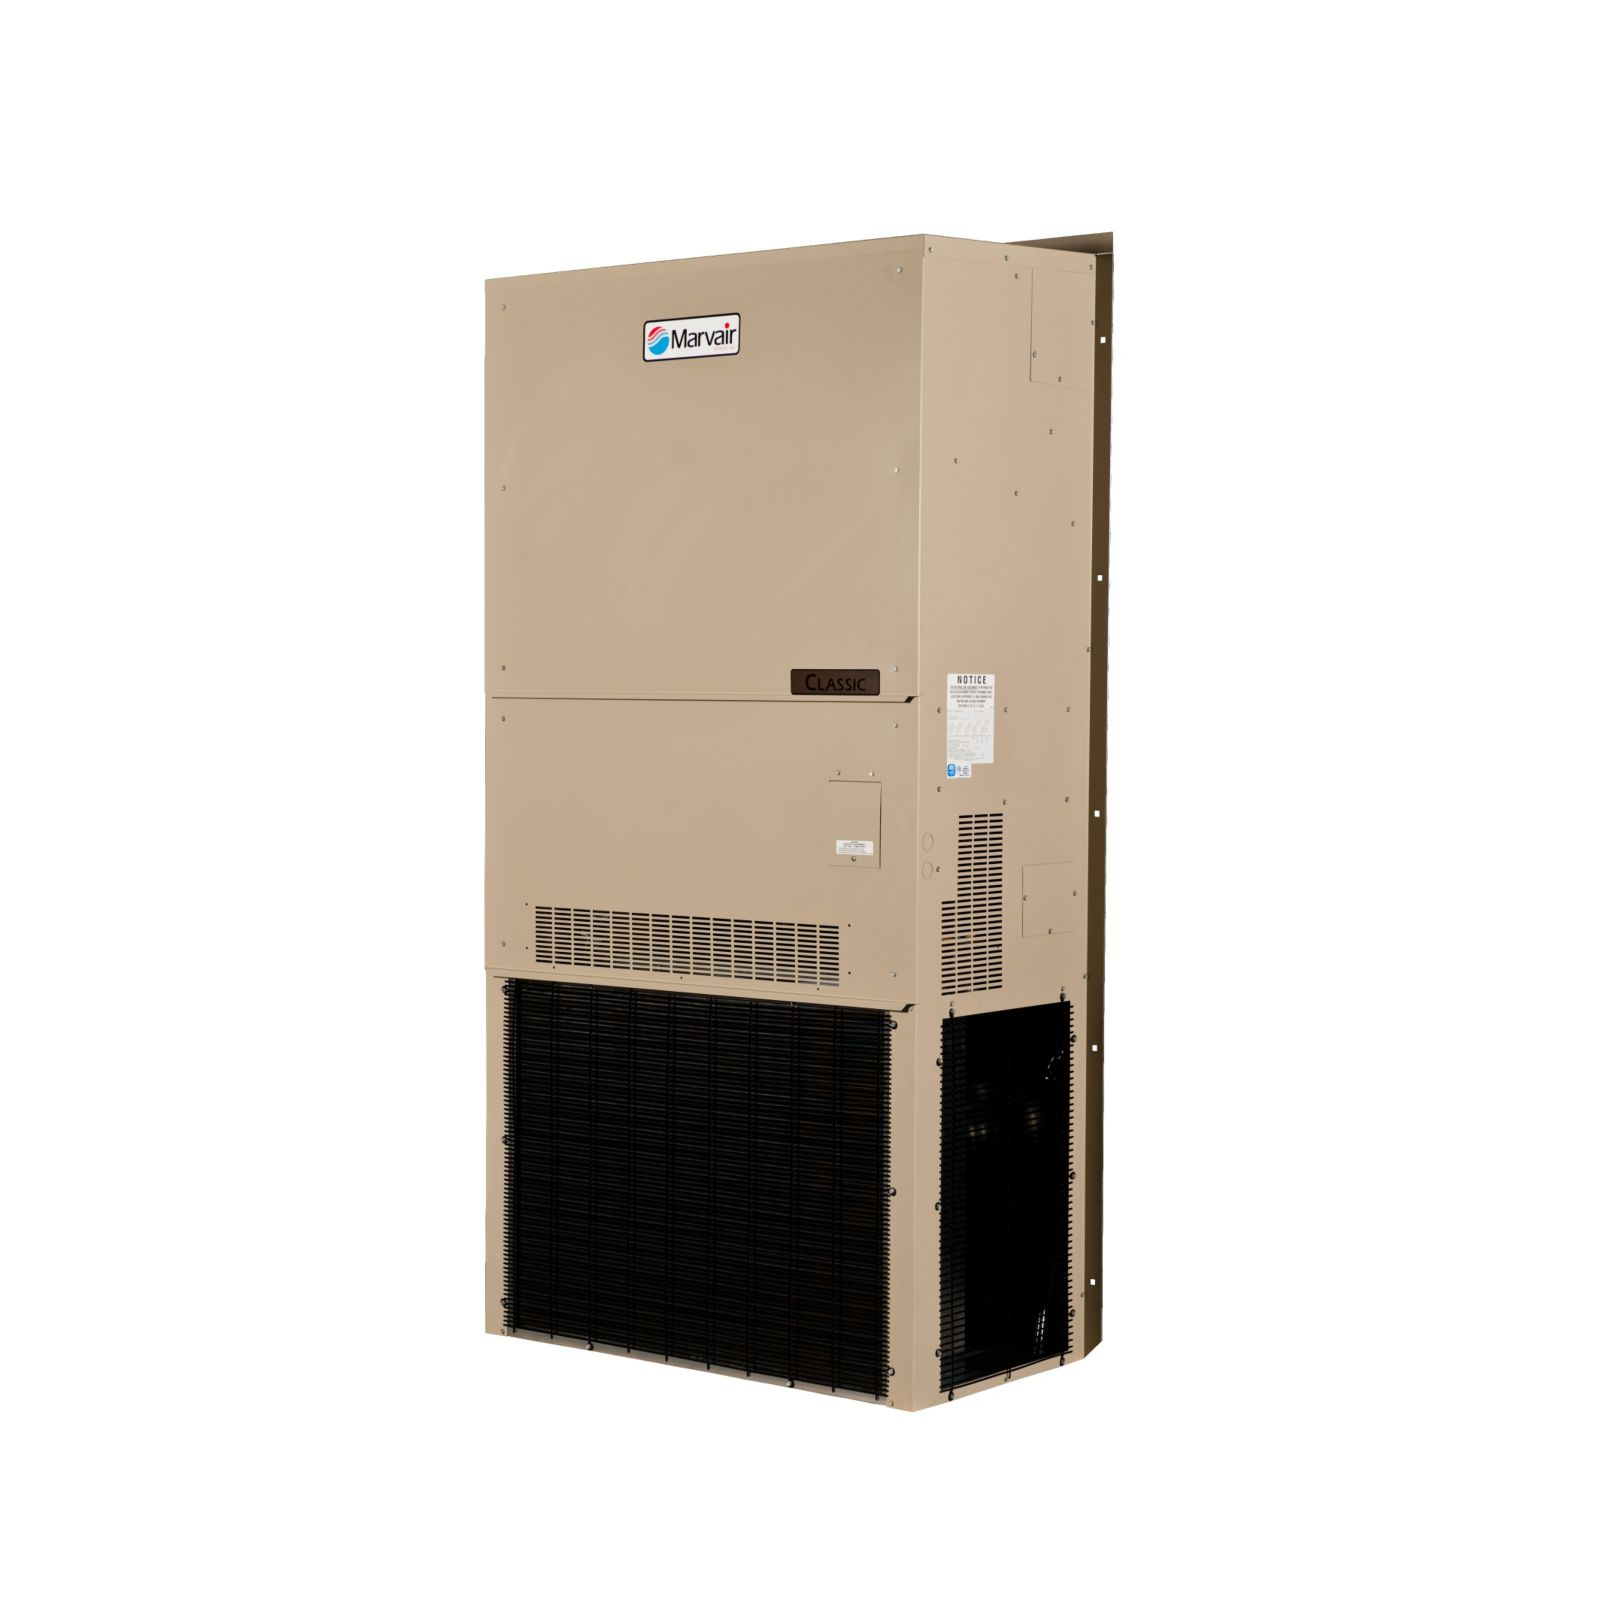 Marvair AVPA12ACA036M5-A2-100 - Wall Mount AC, ModPac, 1 Ton, 208-230/1, 3.6KW, Manual Damper, R410A